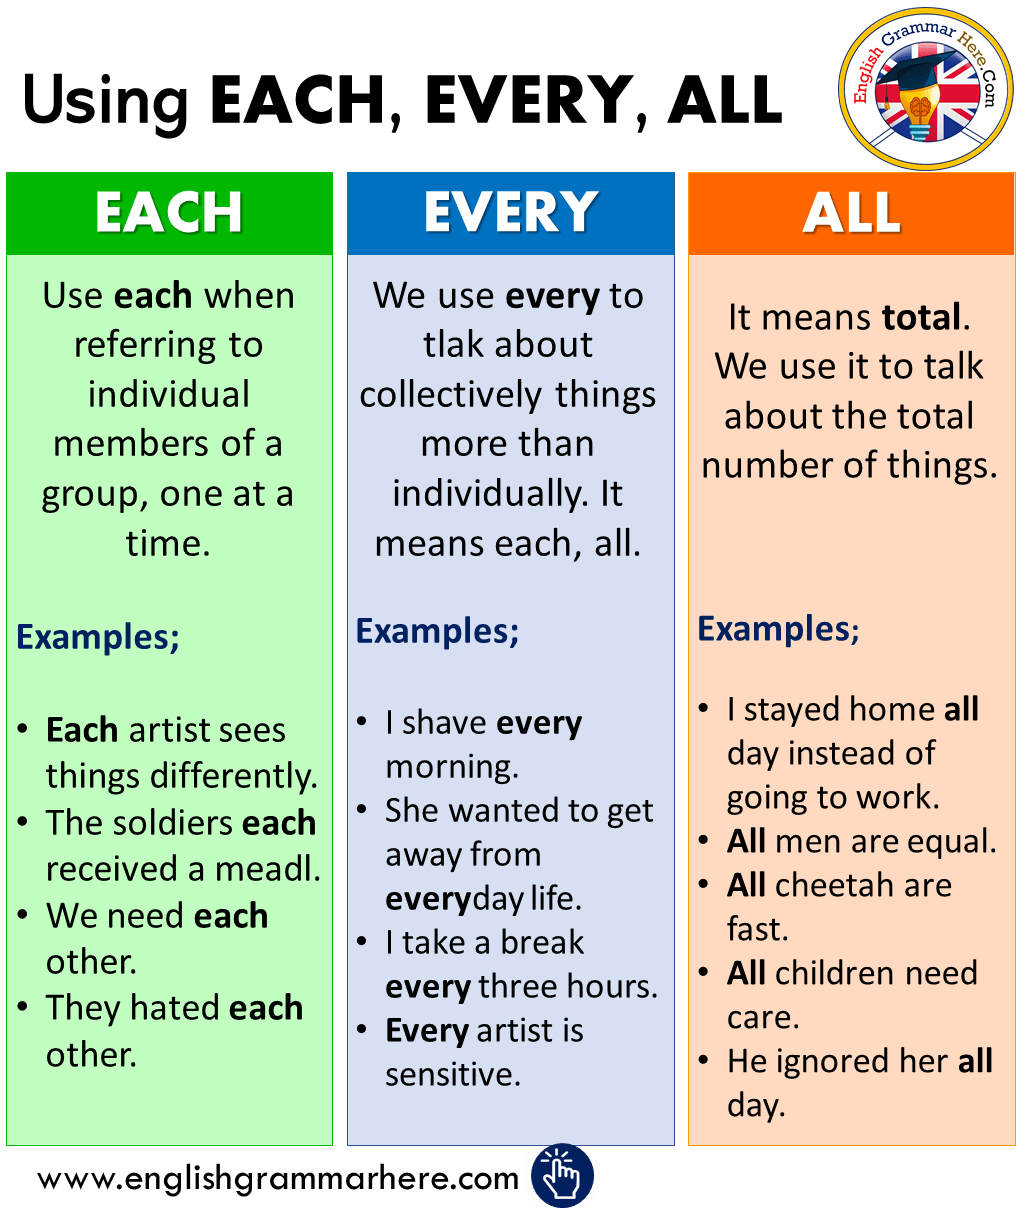 English Using EACH, EVERY, ALL, Definitions and Example Sentences